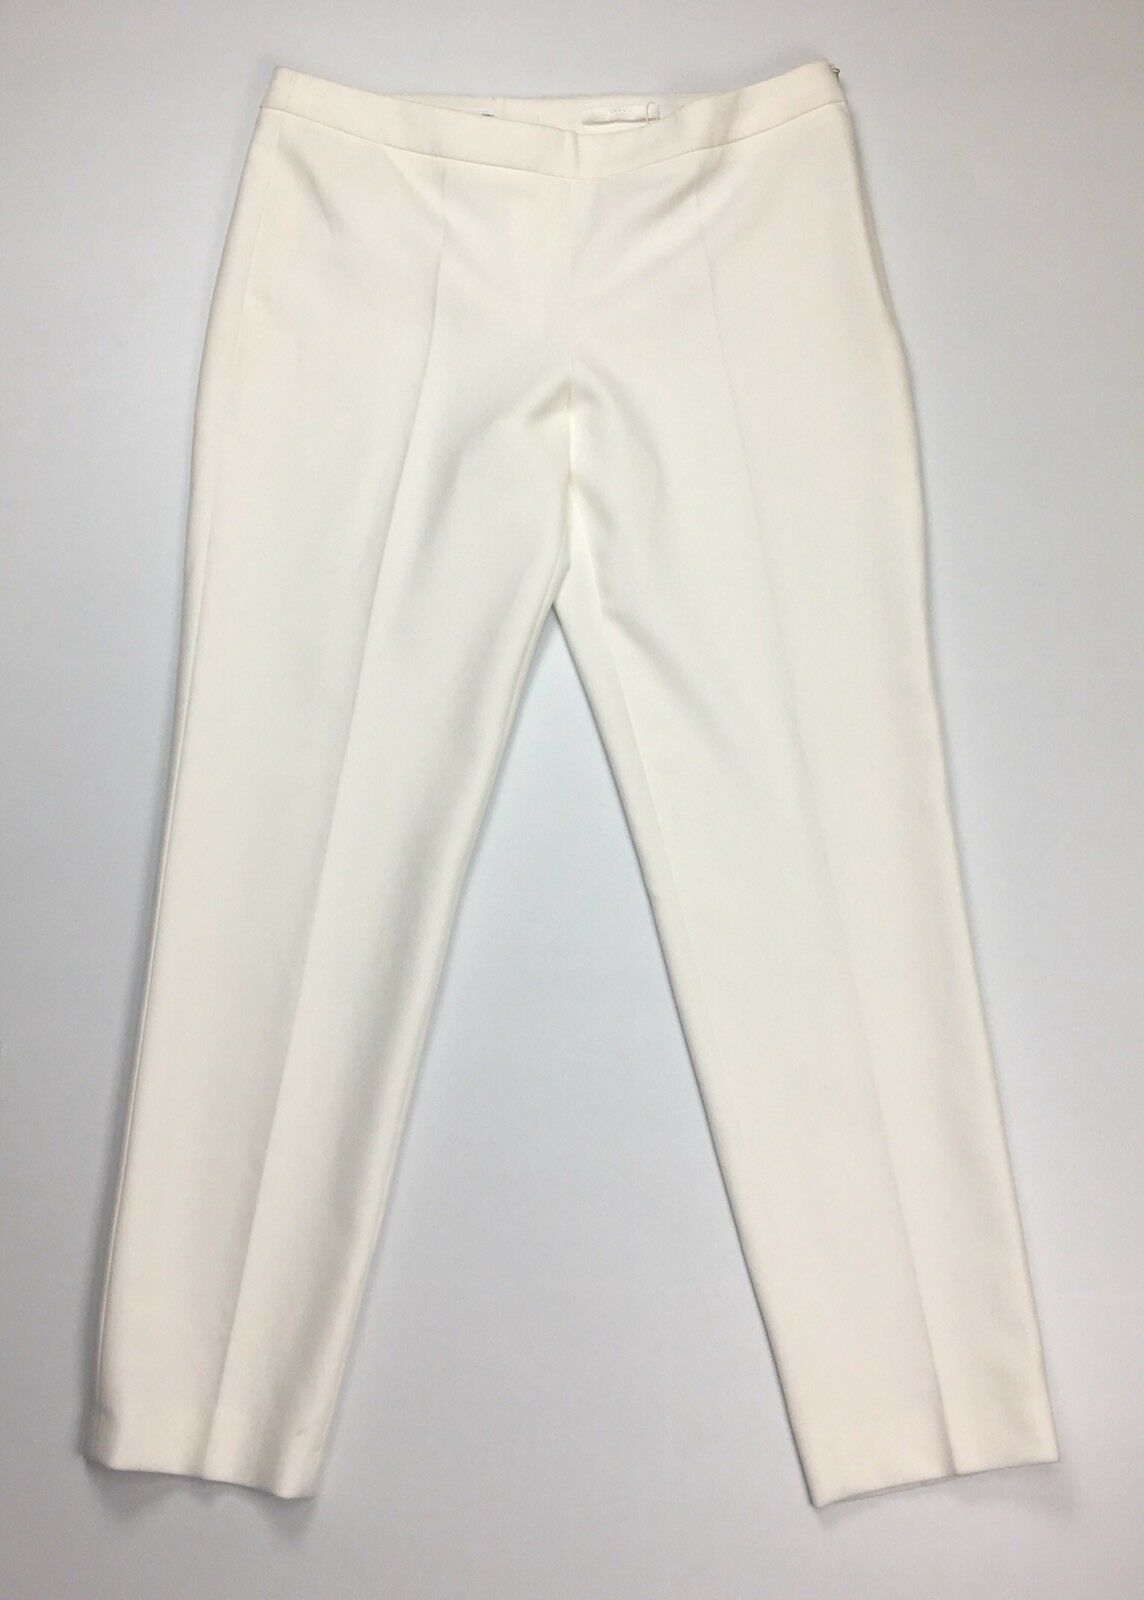 BOSS Women's Size 6 Regular-fit Slim Leg Trousers Pants Stretch Side Zip  H431